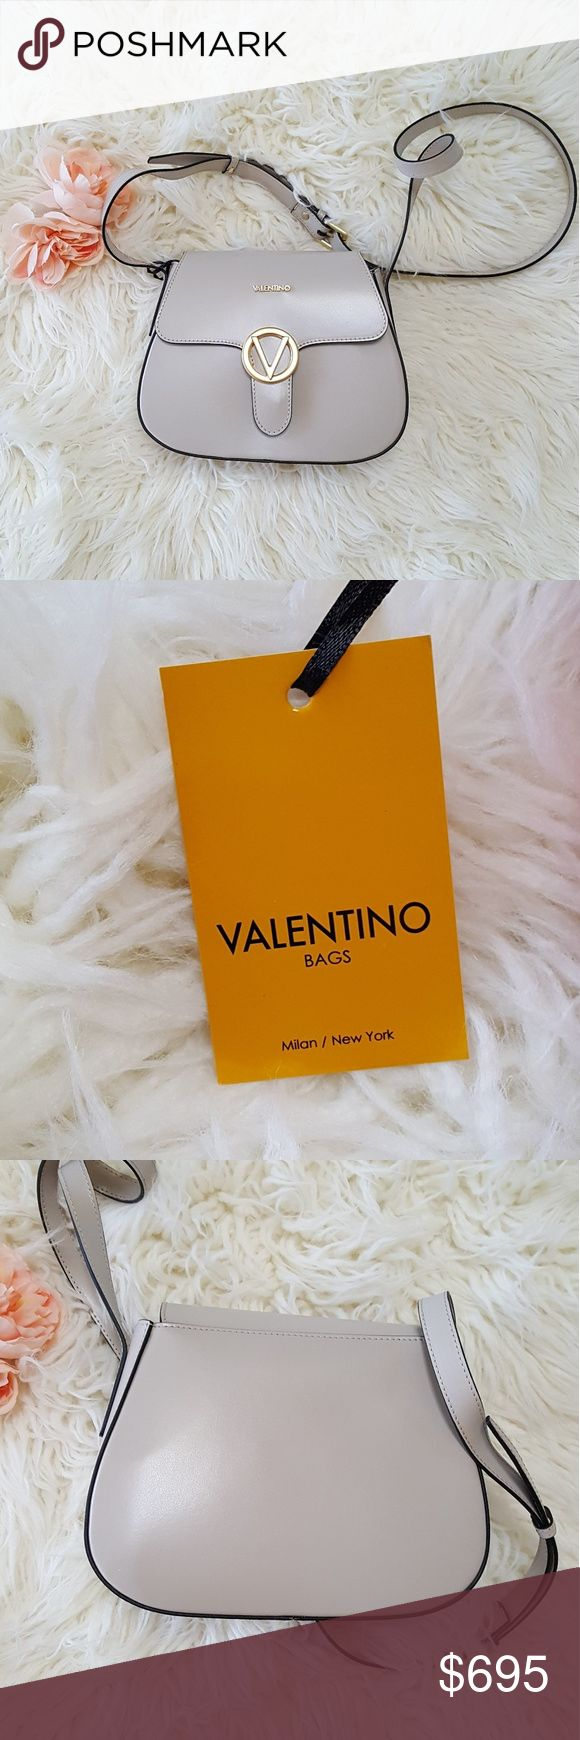 NWT Authentic Taupe Valentino Bag Authentic taupe colored leather Valentino crossbody made in Italy. Comes with dustbag. Gold tone accents. Gooooorgeous!!! *Open to offers Valentino Bags Crossbody Bags